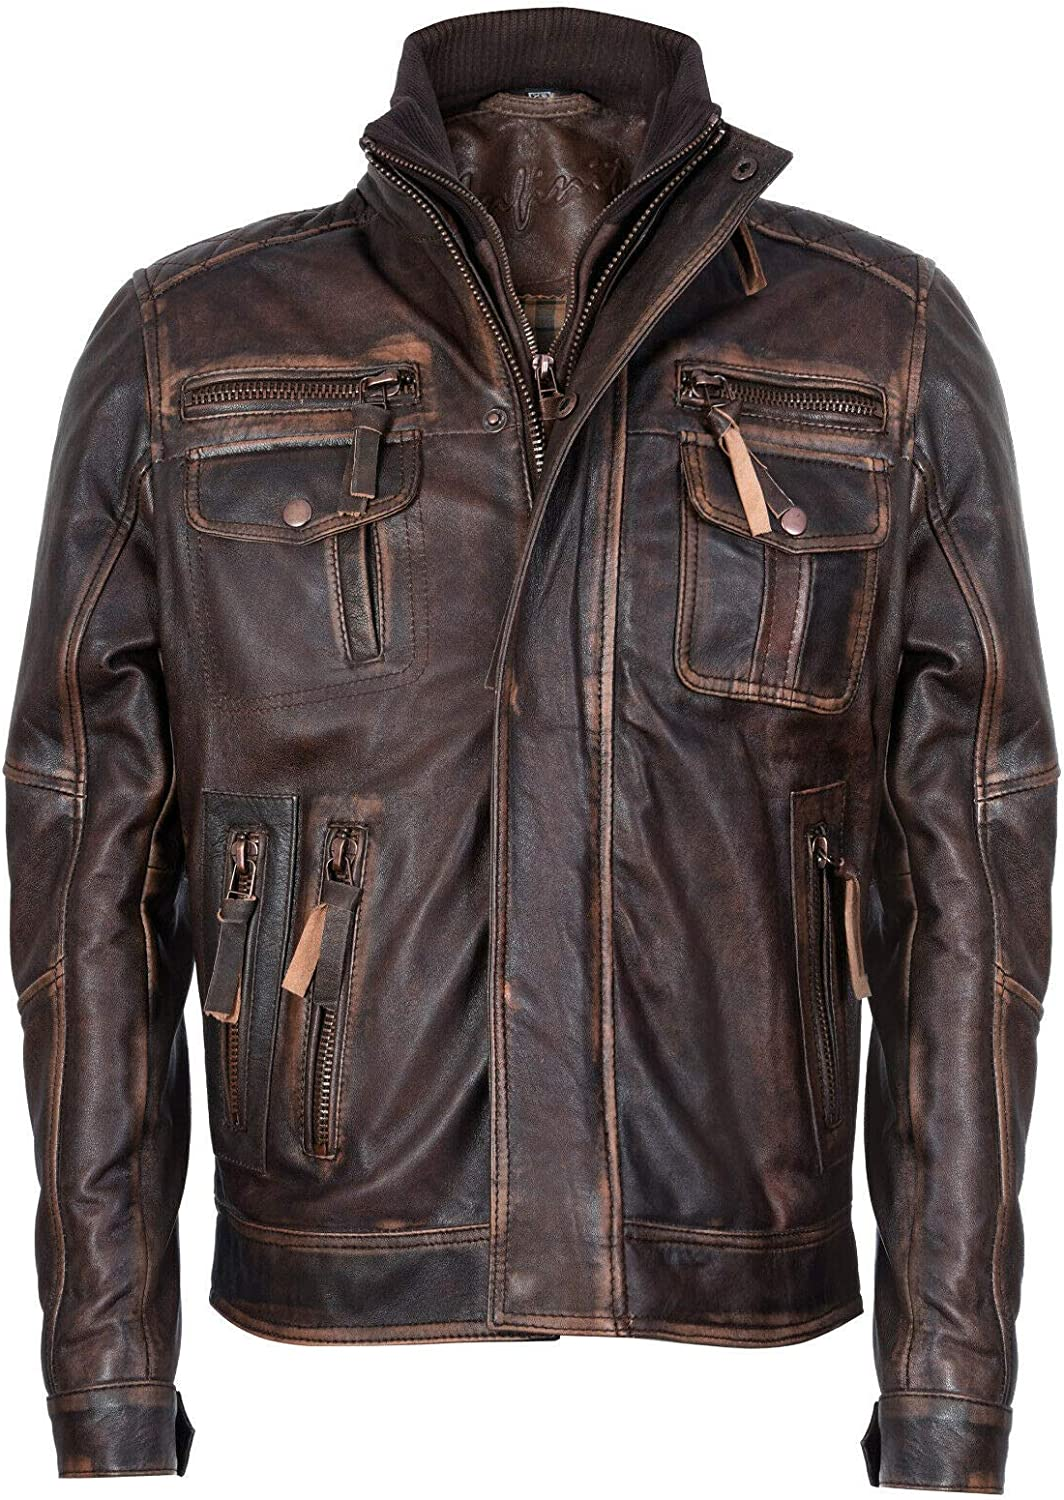 Men's Classic Warm Brown Leather Biker Jacket